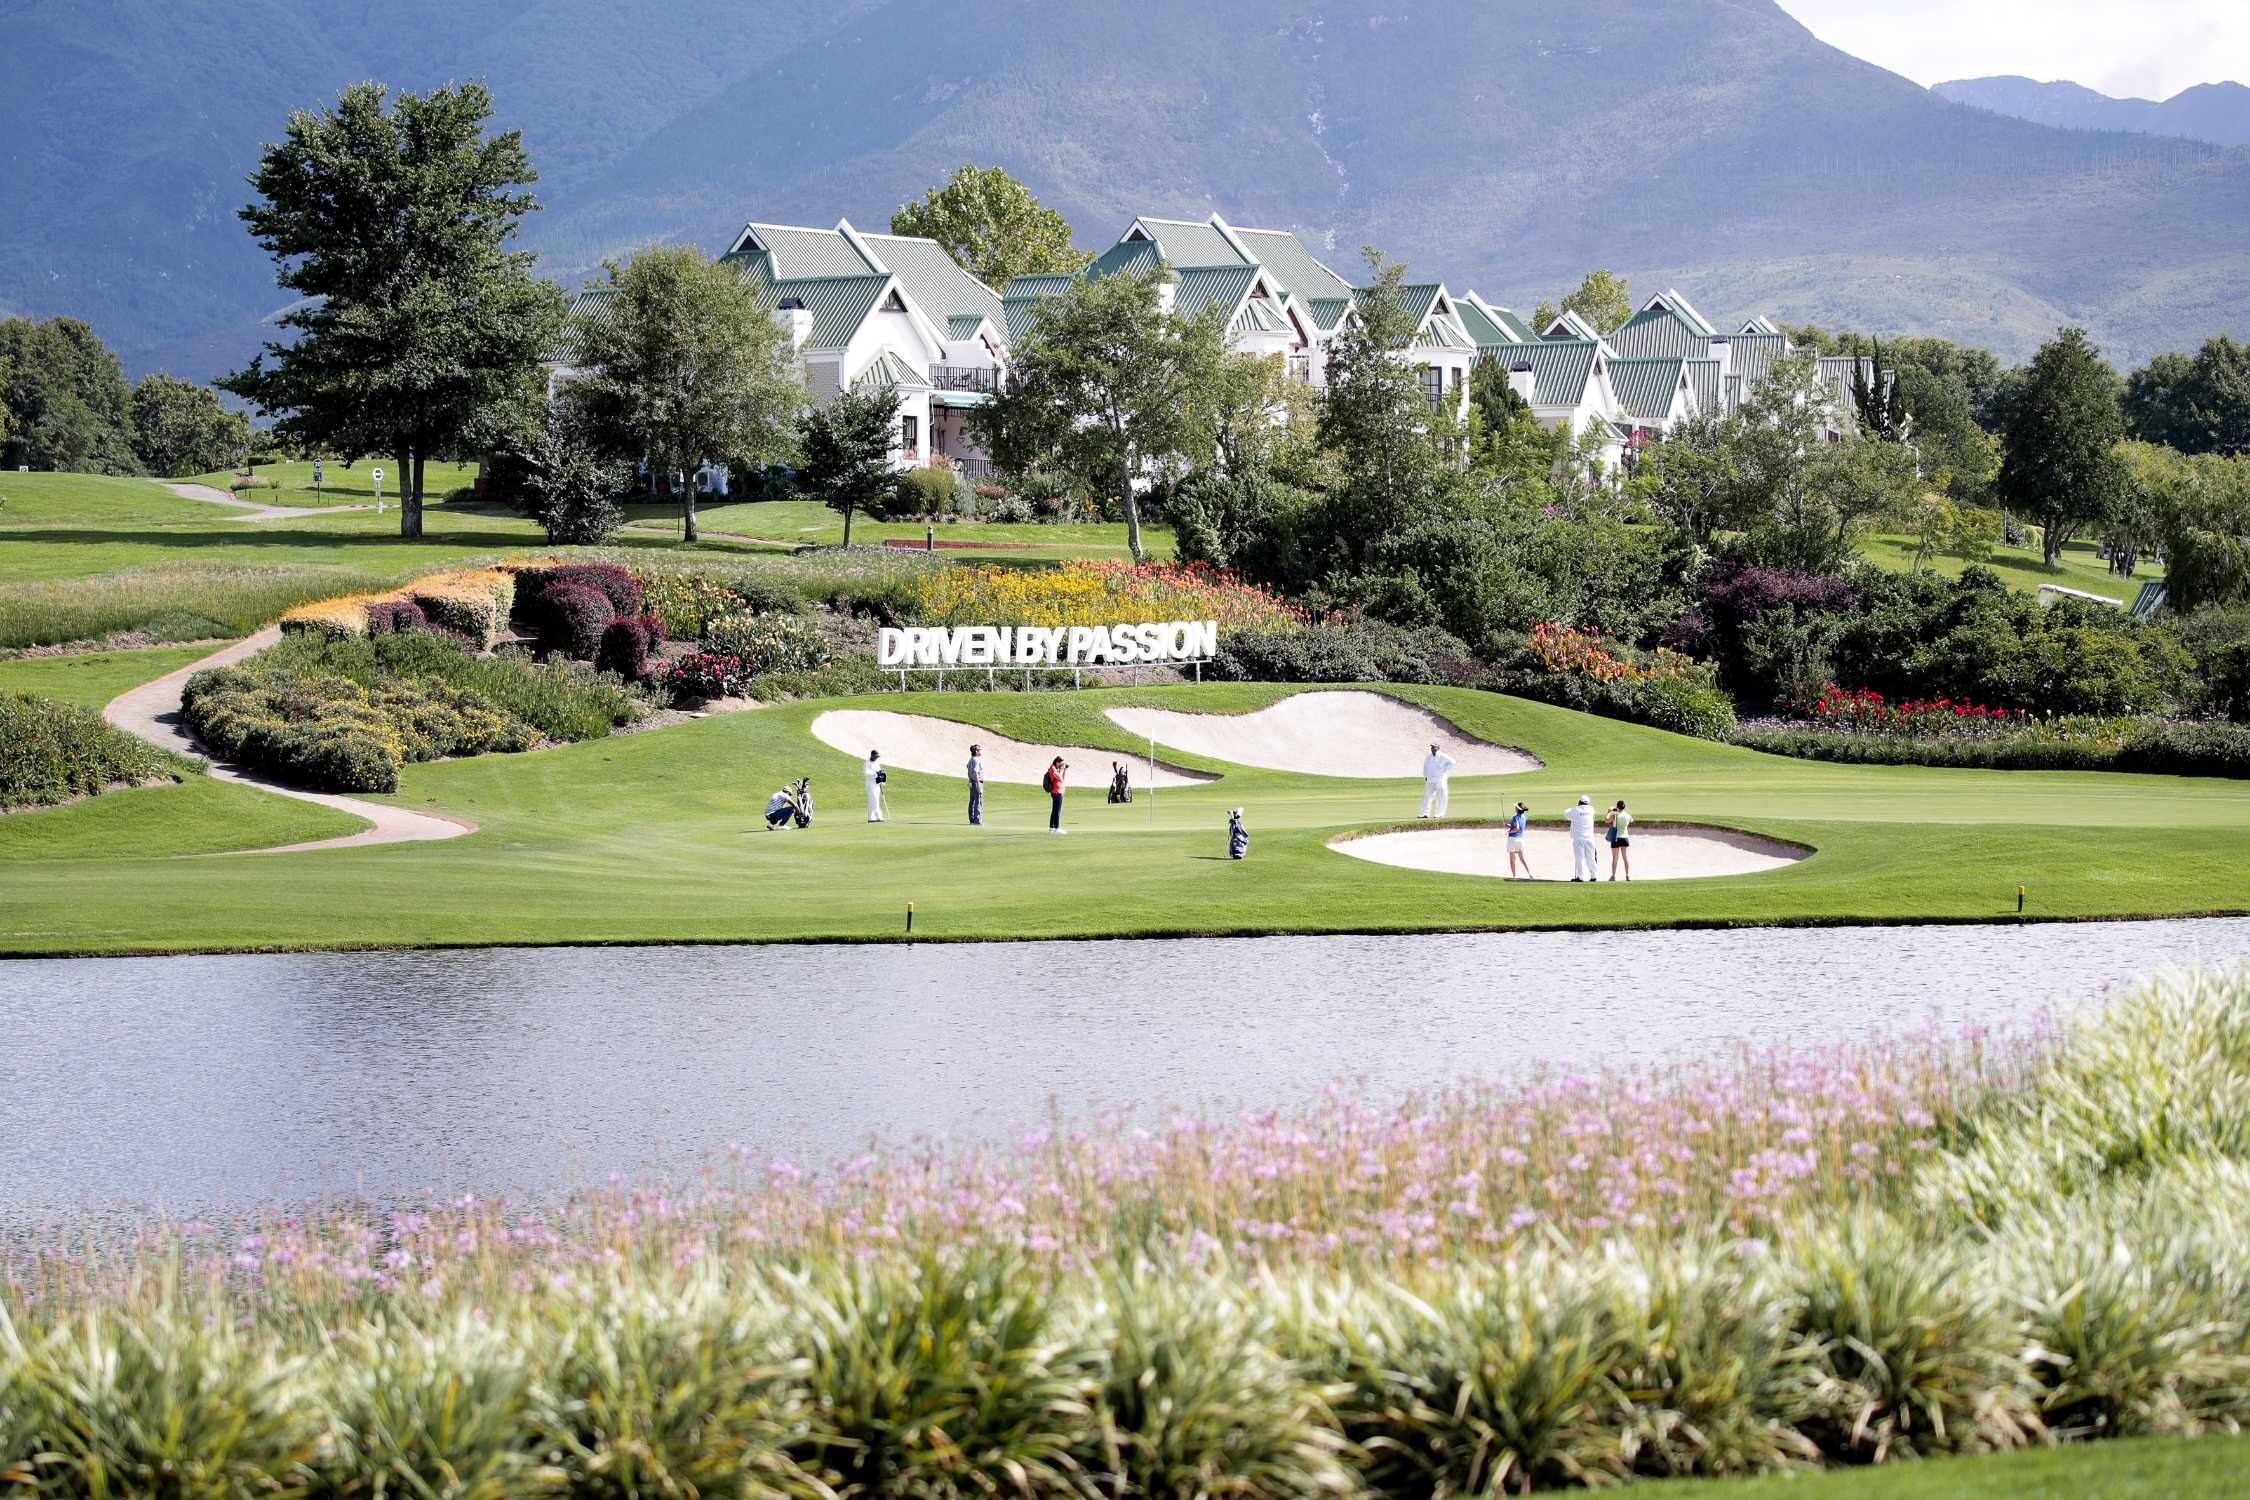 Anniversary In South Africa 30th World Final Of The Bmw Golf Cup International To Be Held At The Fancourt Golf Resort It Is A Word That In 2020 Golf Courses Bmw Golf